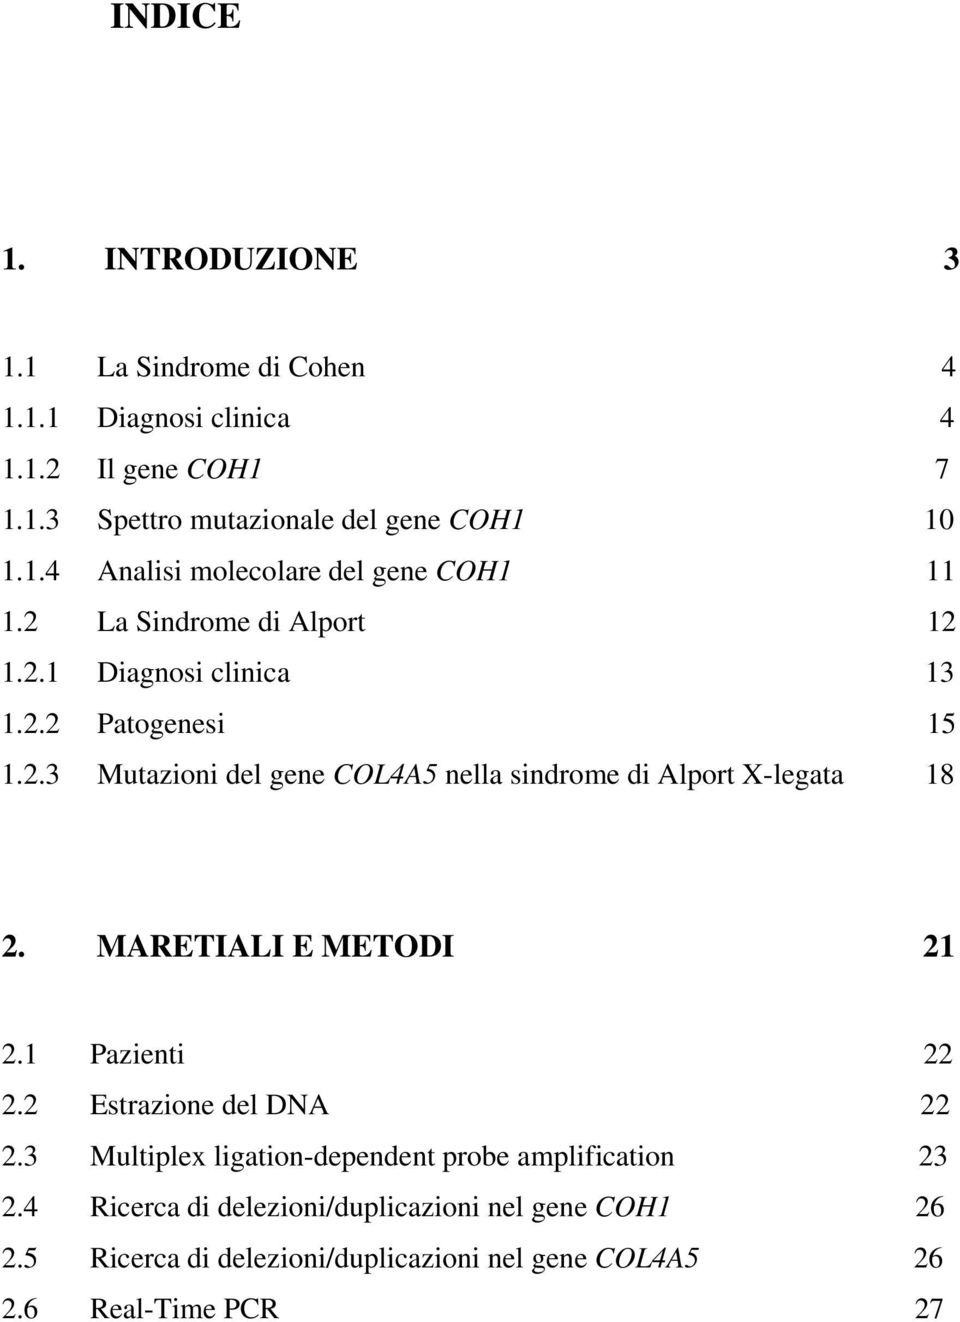 MARETIALI E METODI 21 2.1 Pazienti 22 2.2 Estrazione del DNA 22 2.3 Multiplex ligation-dependent probe amplification 23 2.